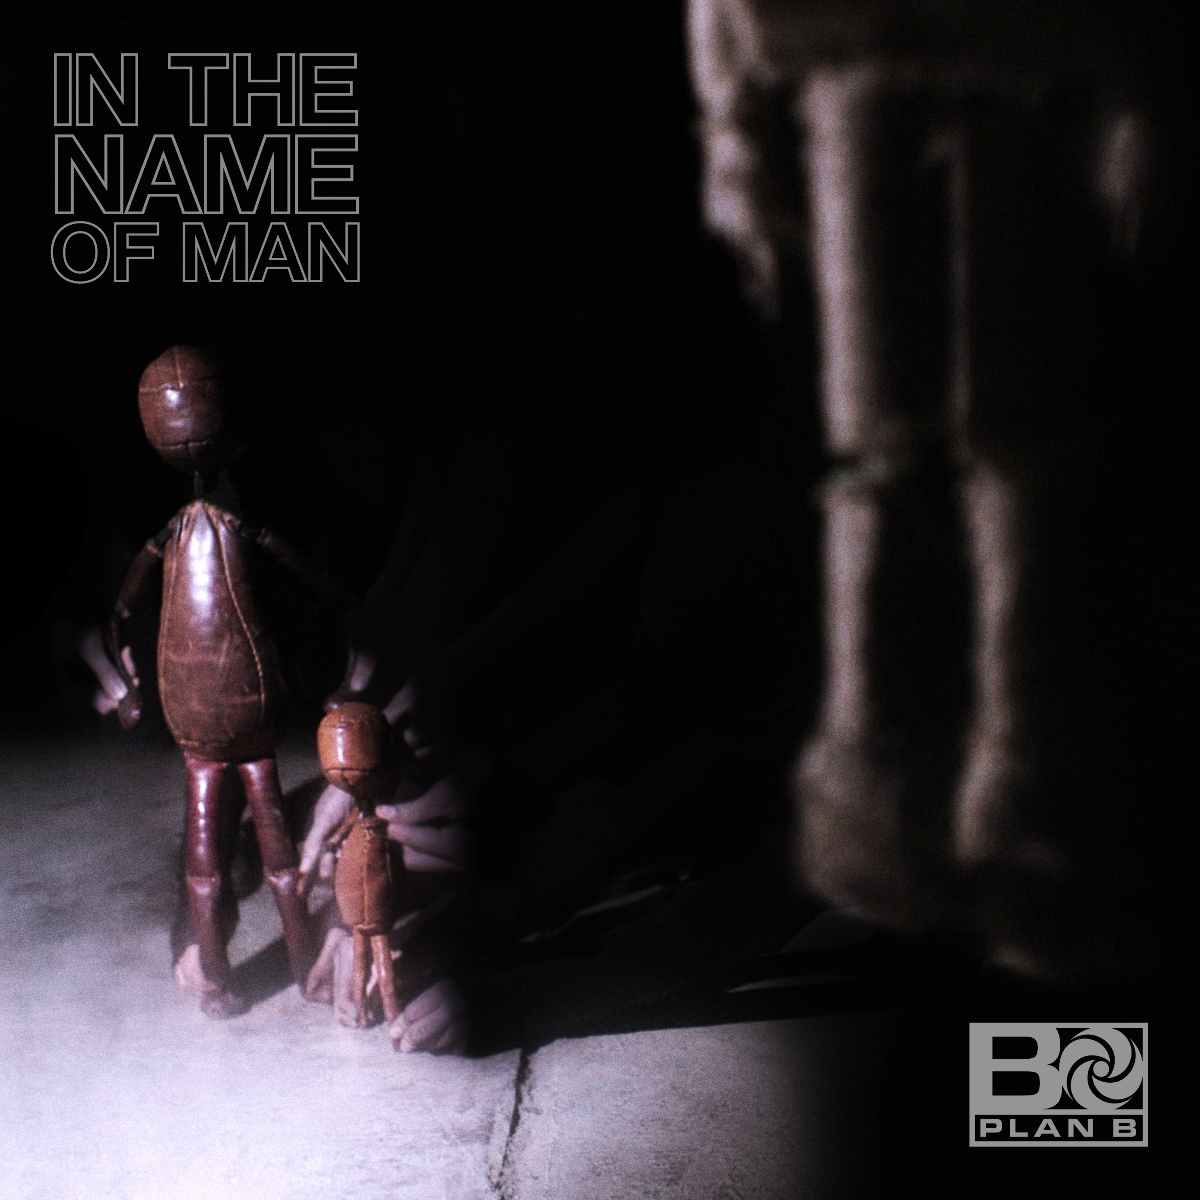 PLAN B UNVEILS VIDEO FOR 'IN THE NAME OF MAN'